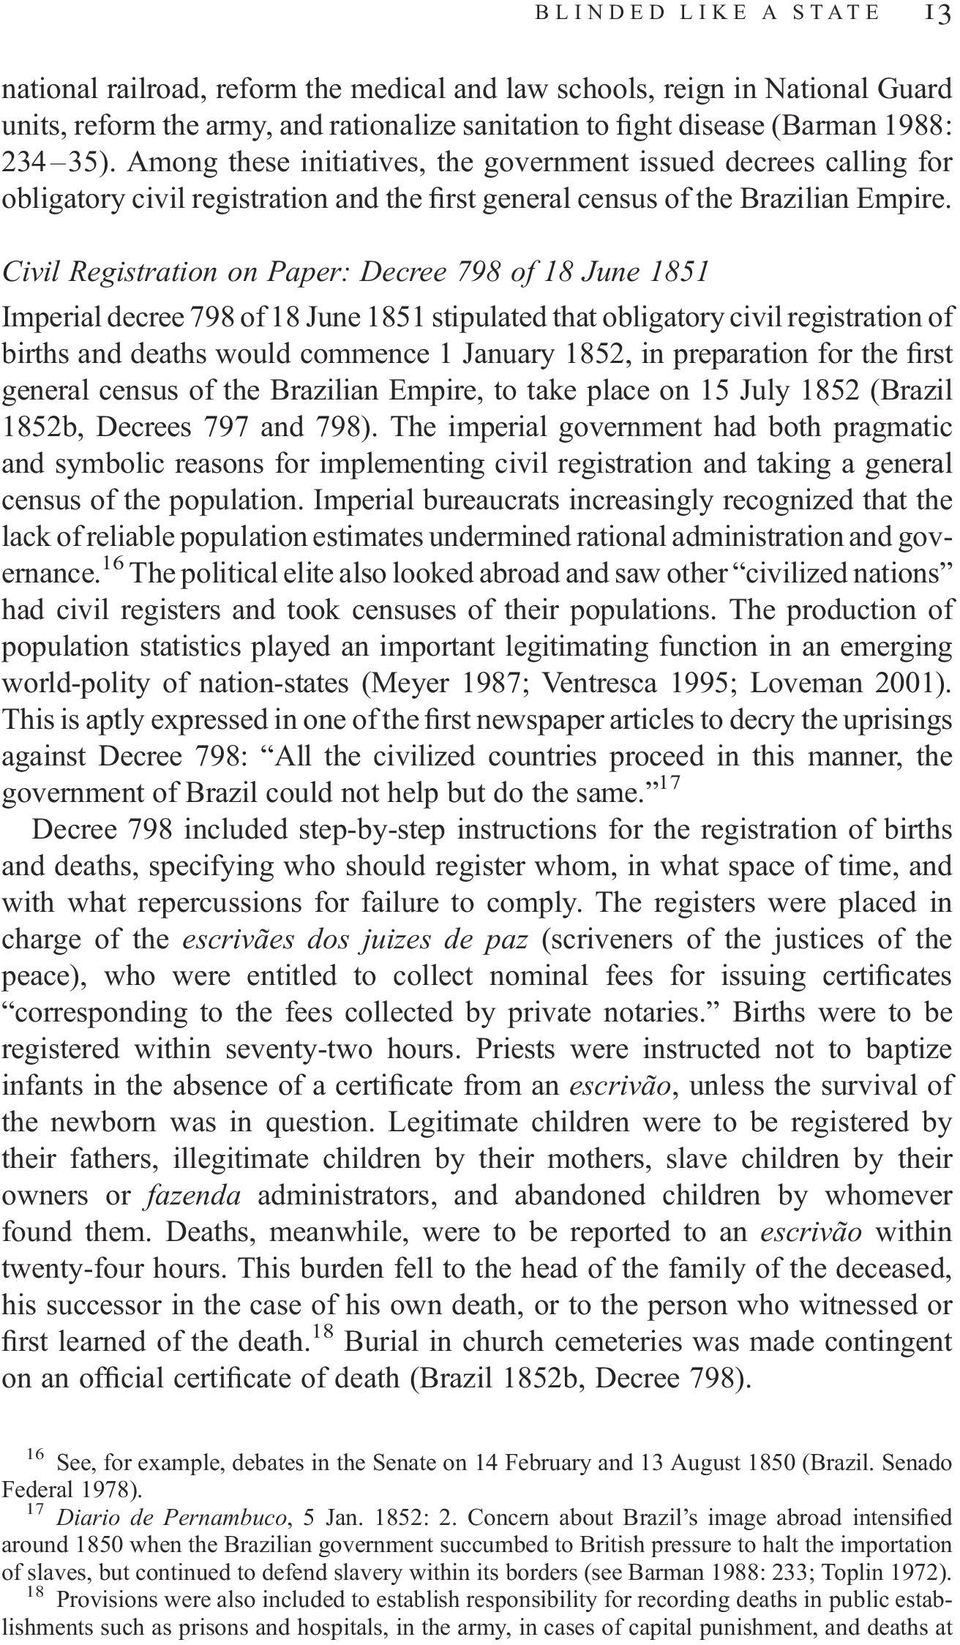 Civil Registration on Paper: Decree 798 of 18 June 1851 Imperial decree 798 of 18 June 1851 stipulated that obligatory civil registration of births and deaths would commence 1 January 1852, in